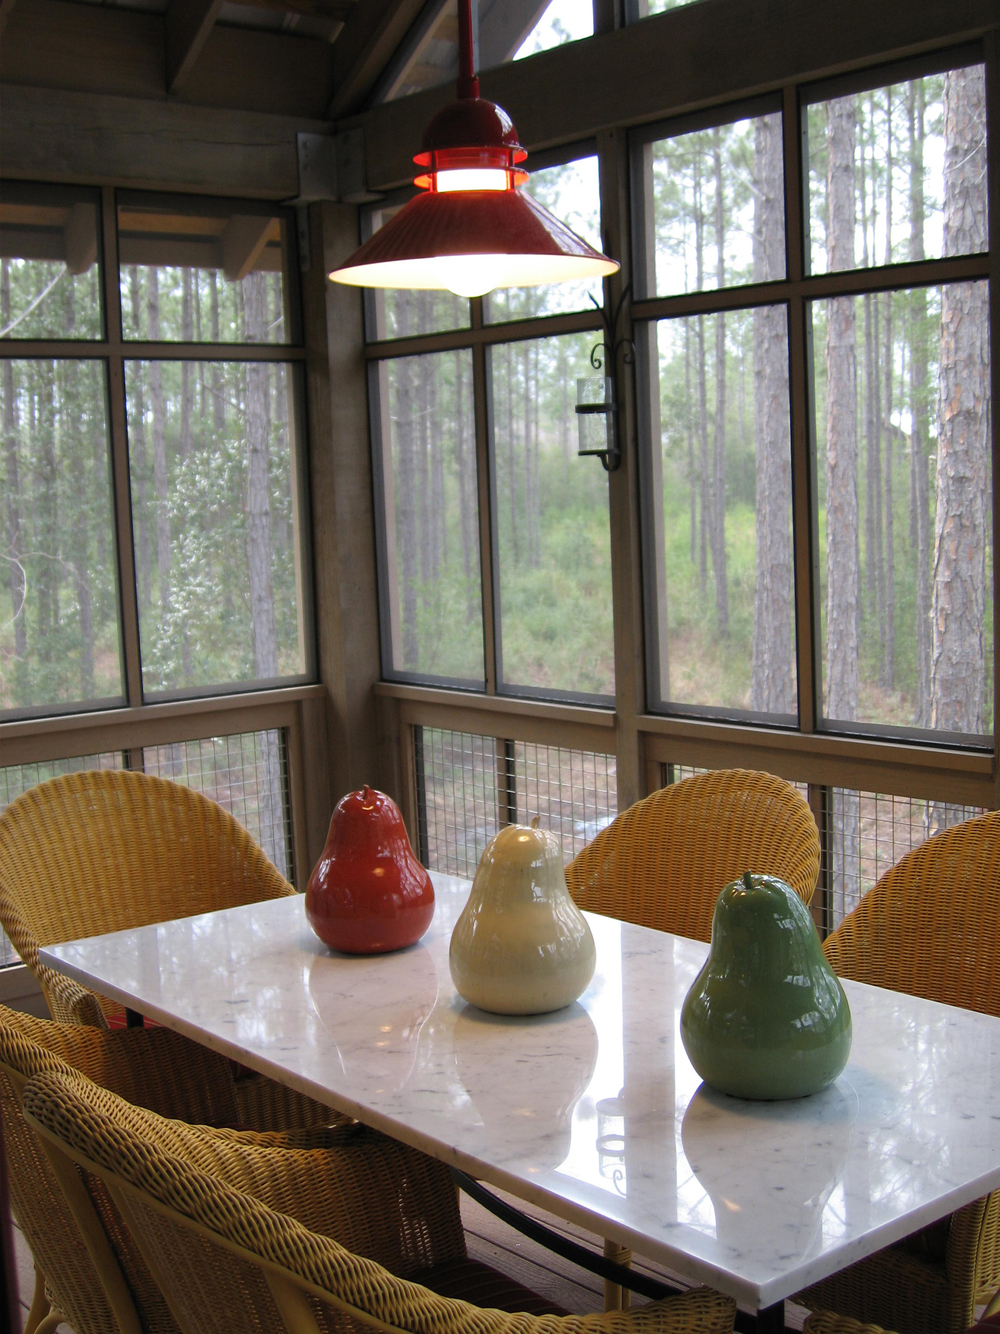 treehouse_rivercamps_panama_city_florida_interior.jpg